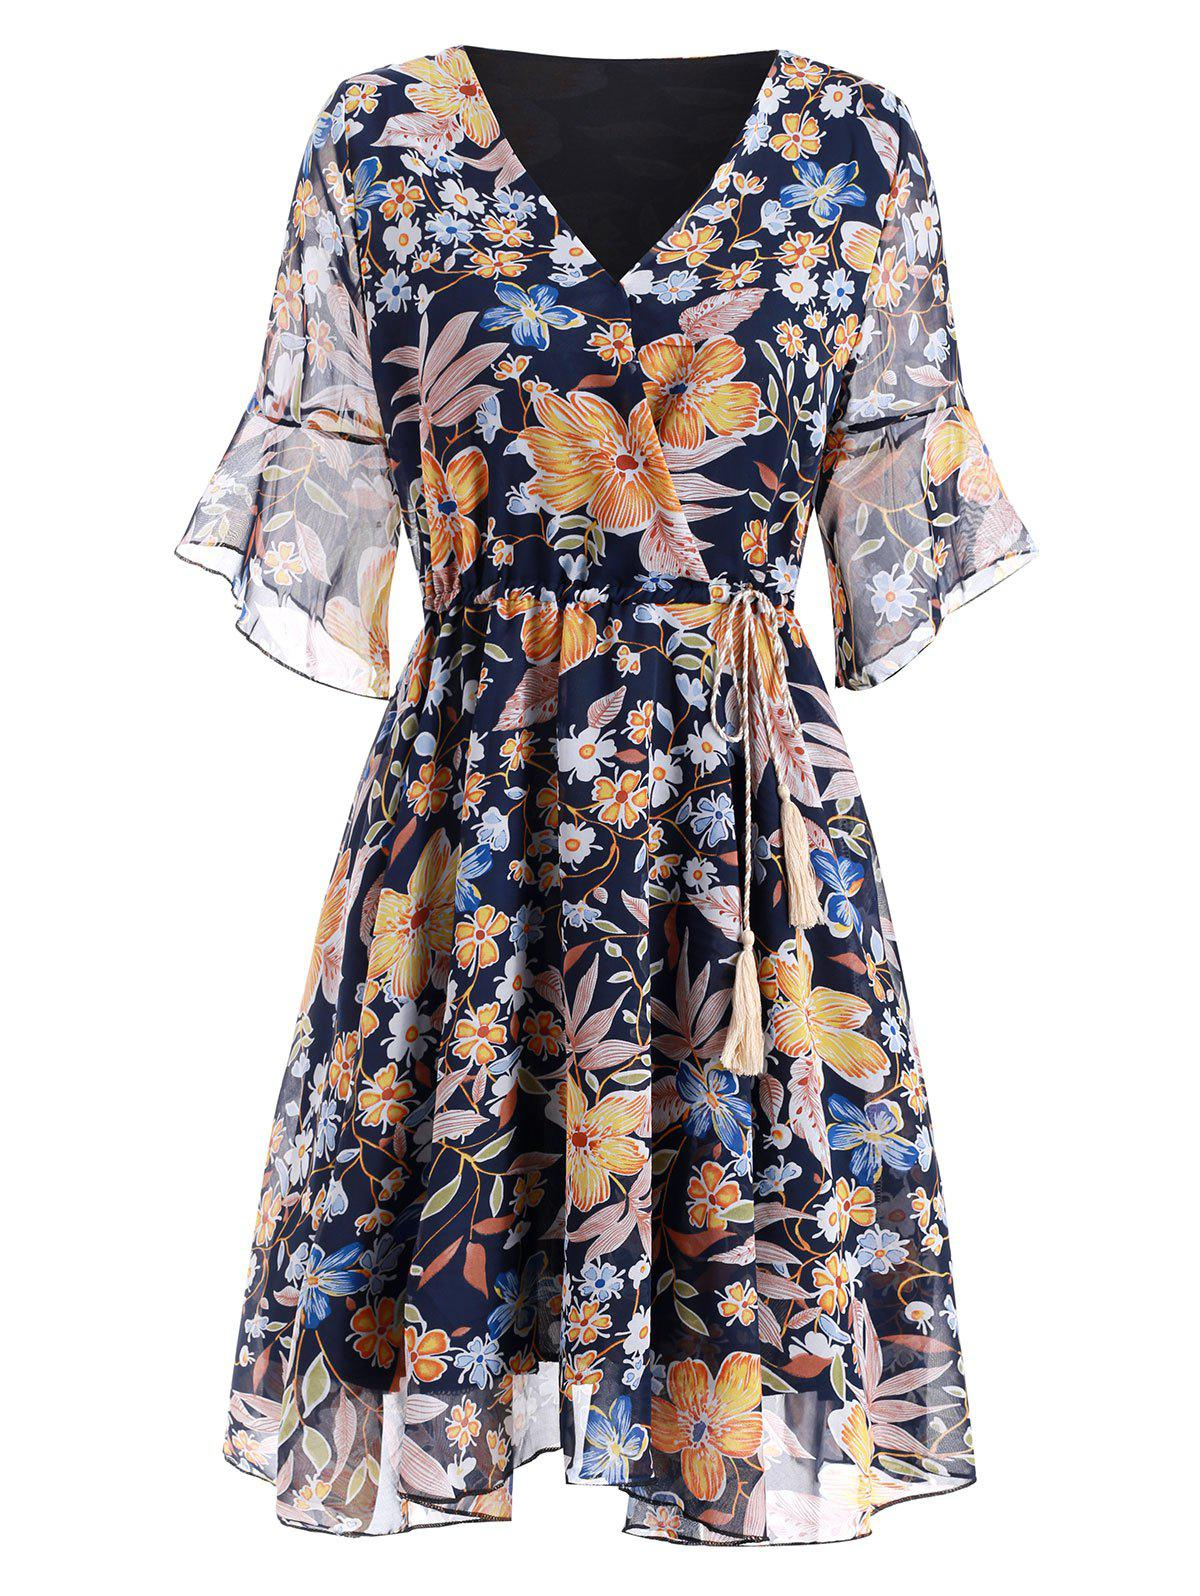 Online Floral Flare Sleeve Chiffon Dress